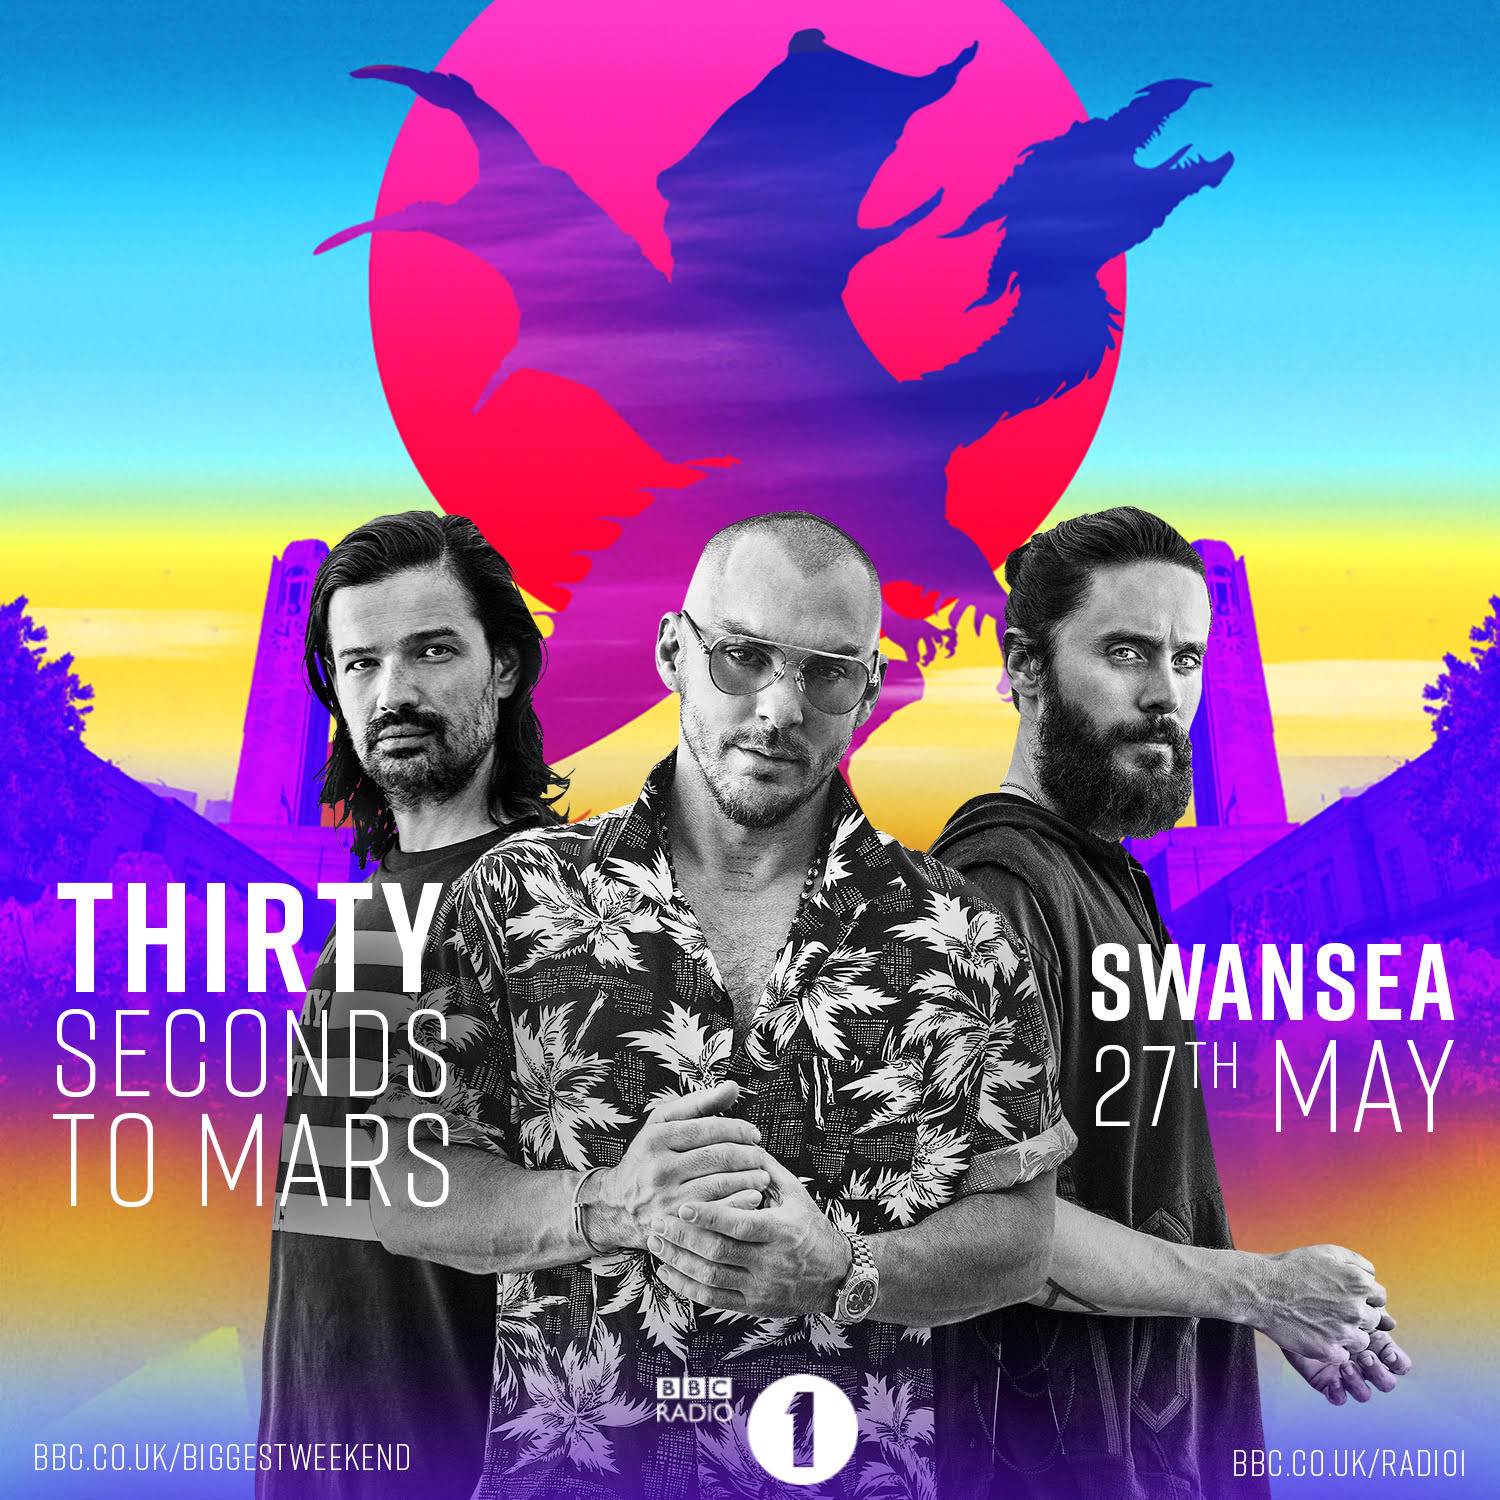 MARS IS COMING MAY 27 // @BBCR1 #BiggestWeekend SWANSEA  https://t.co/cZdcg9vy1n  #MonolithTour https://t.co/hMYeRICEJC